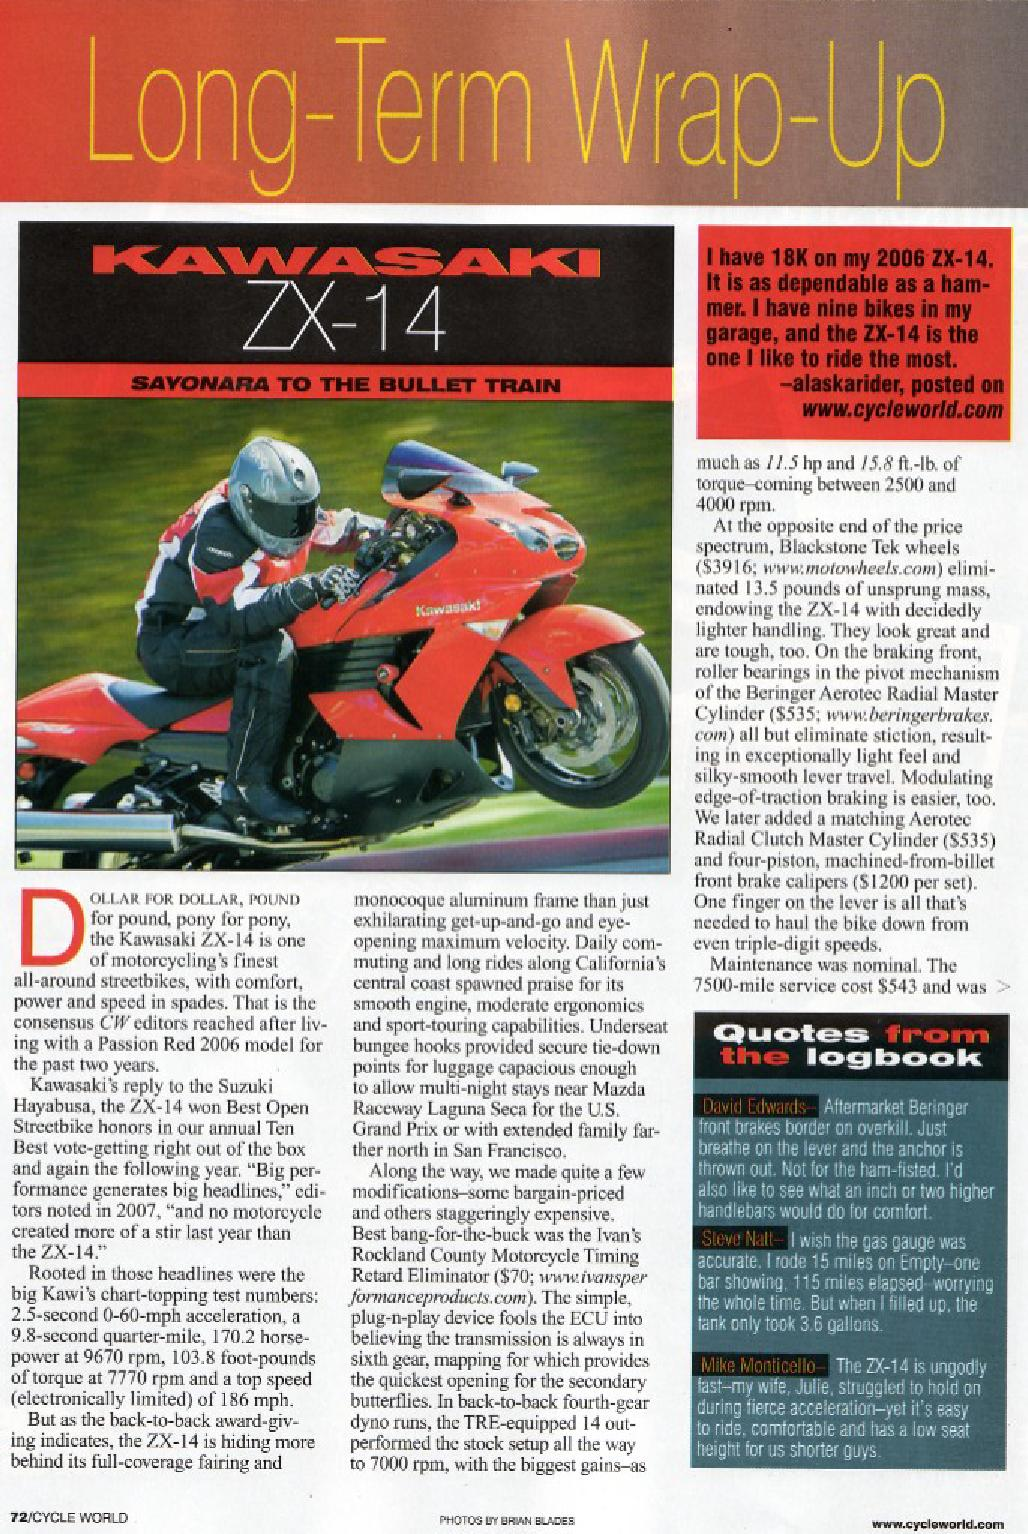 CycleWorld Magazine April 2009 - page 1